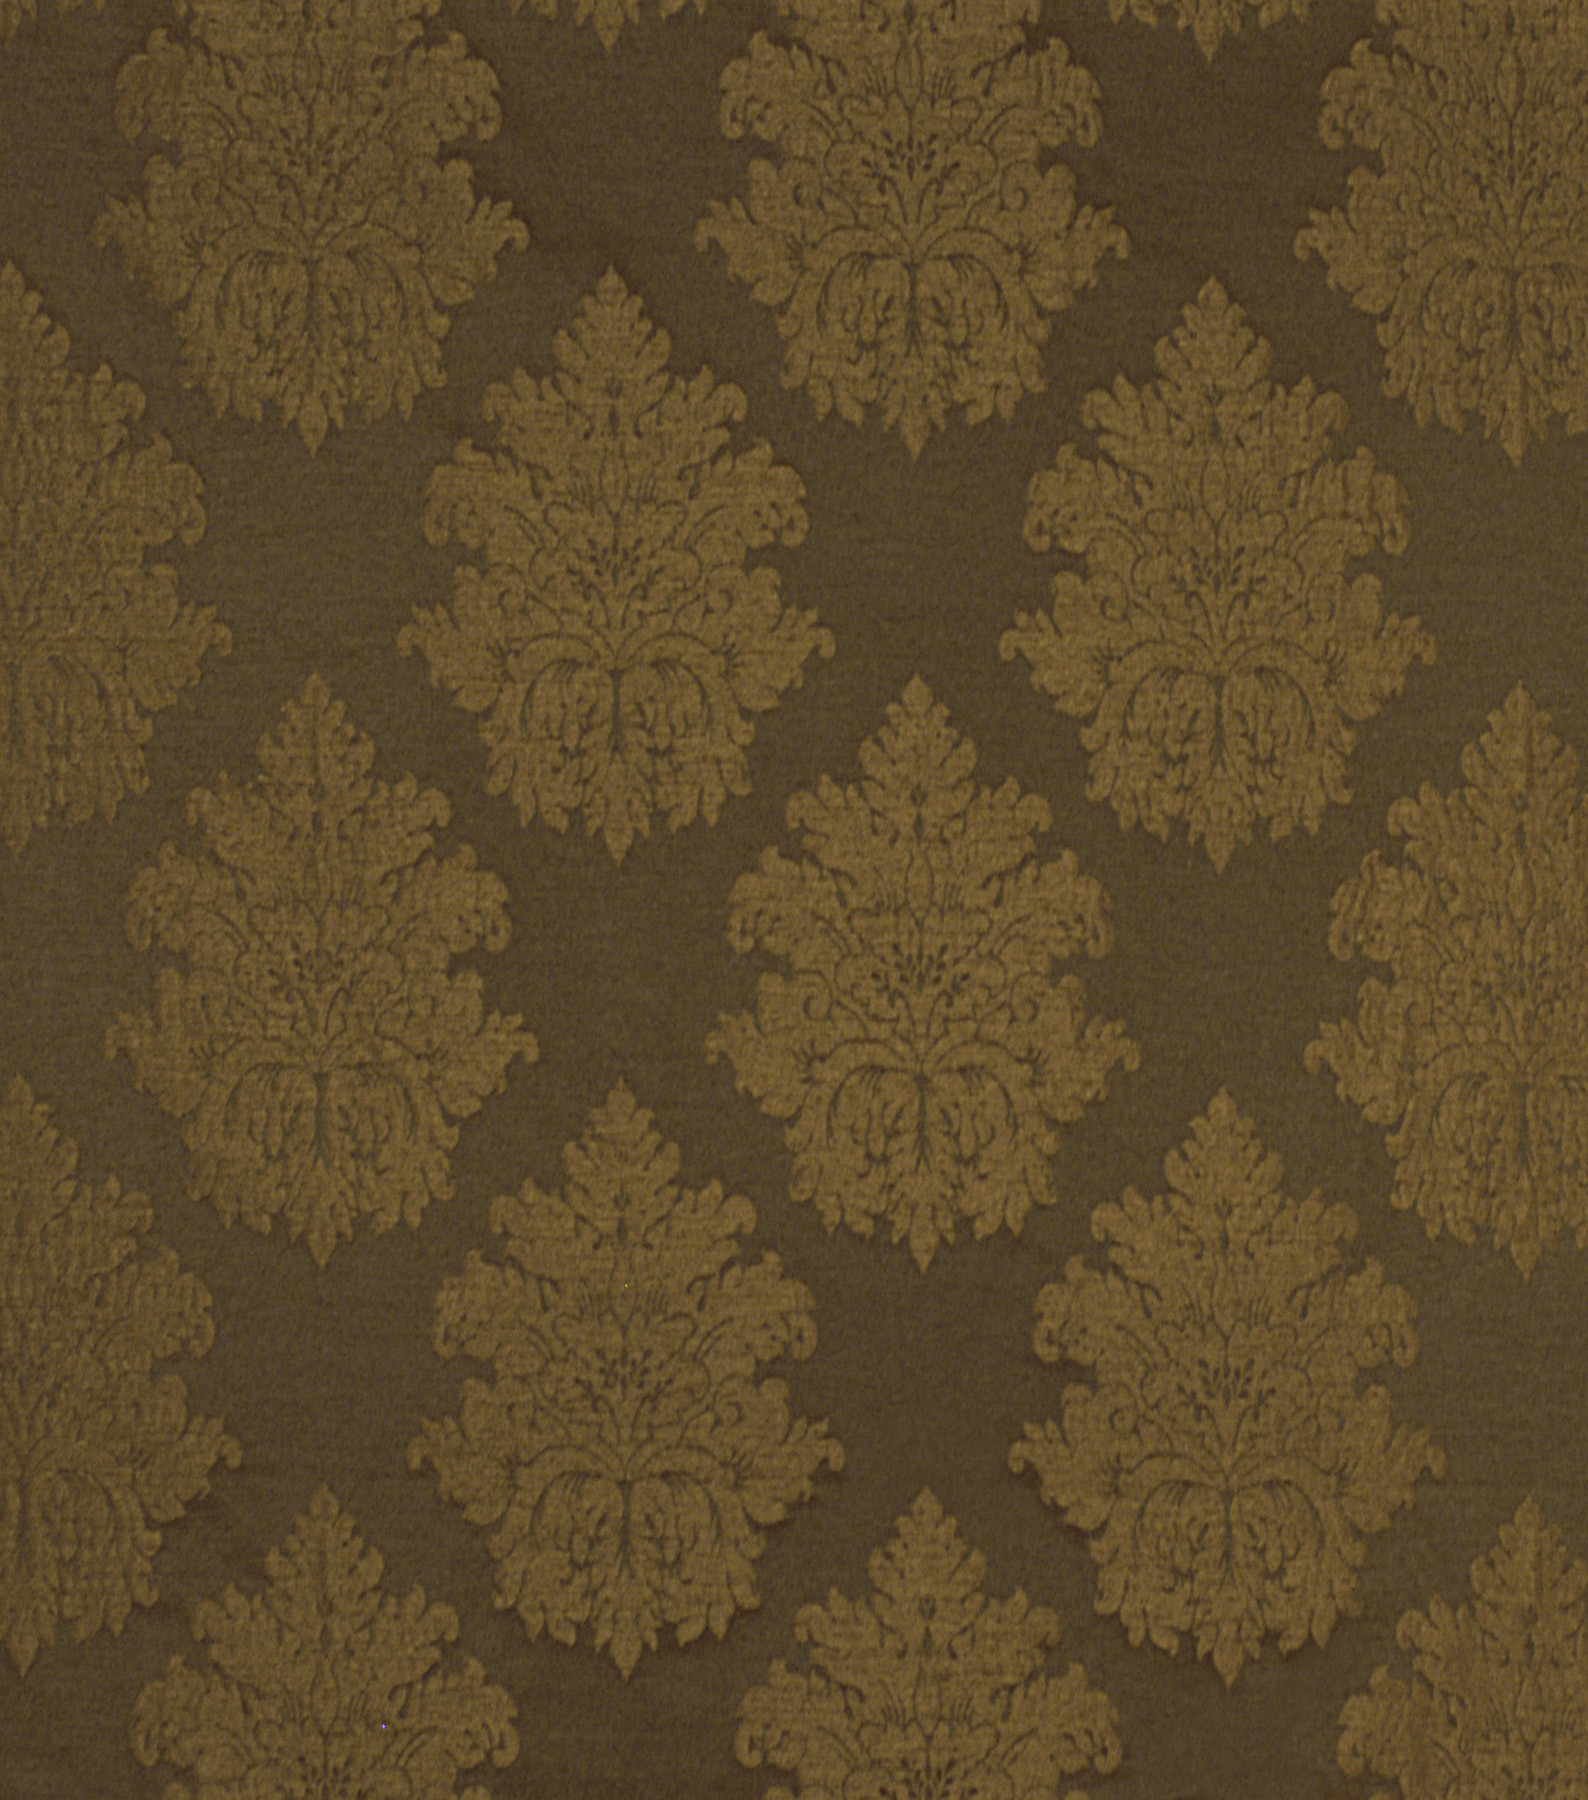 Home Decor 8\u0022x8\u0022 Fabric Swatch-Signature Series Home At Last Toffee